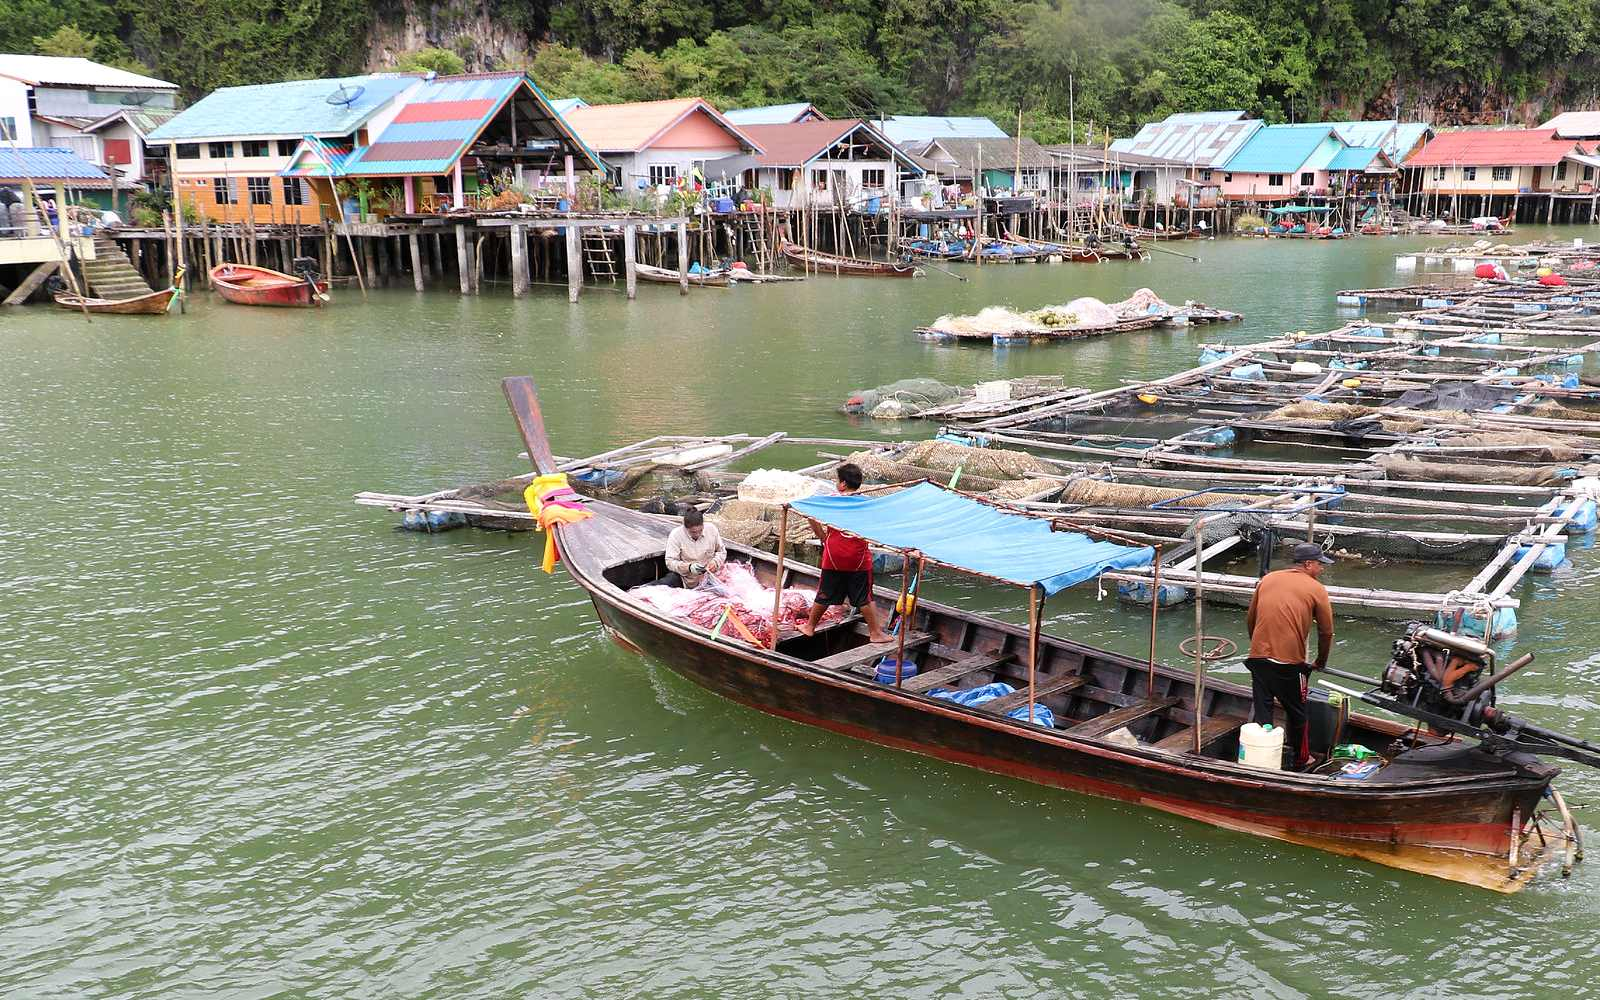 James Bond Island Tour, floating village